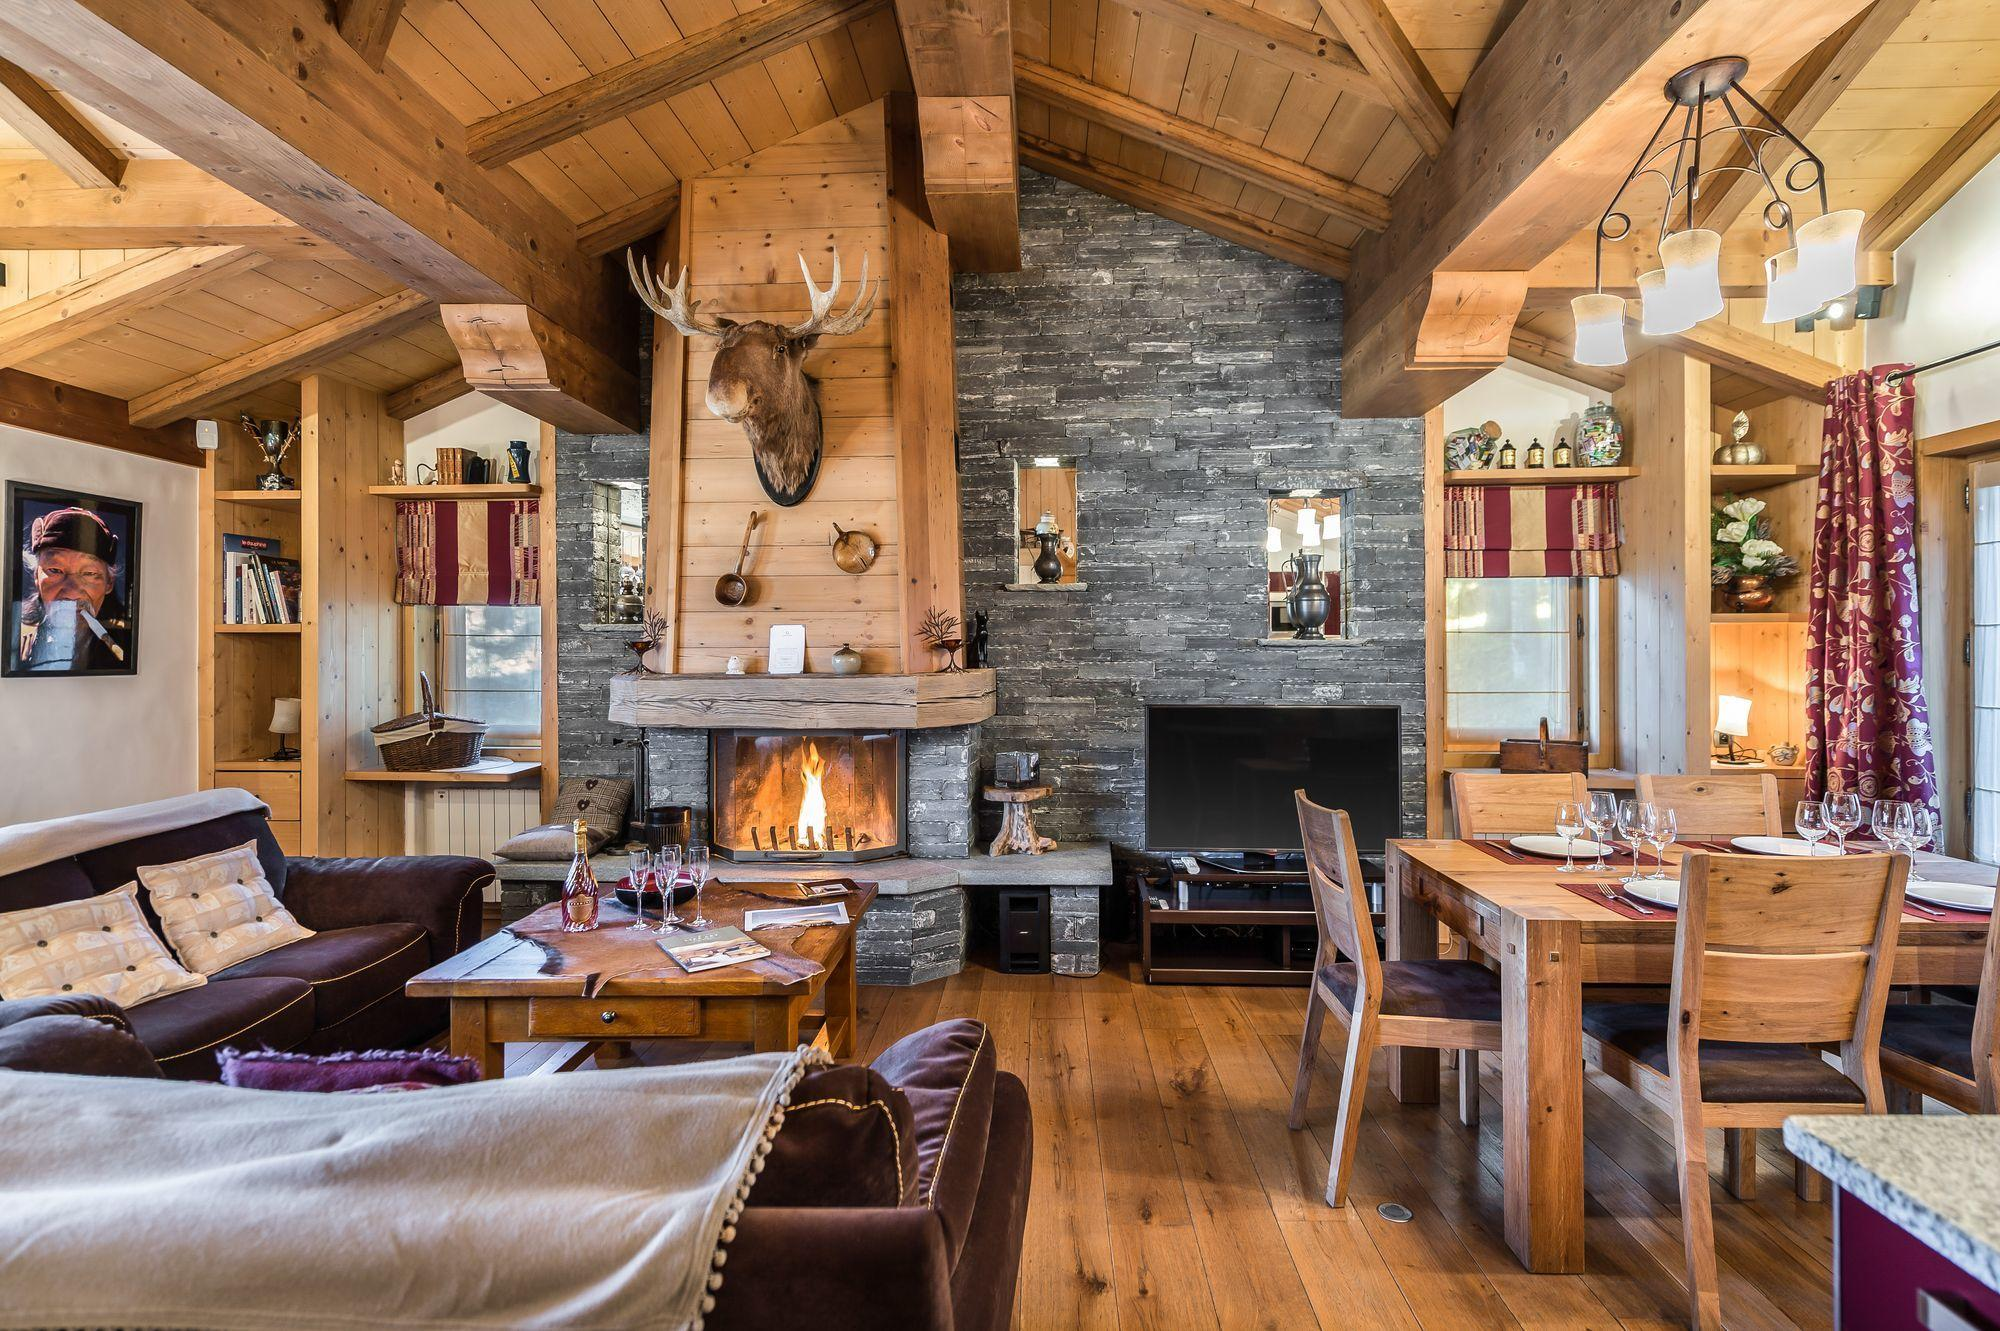 rent chalet by the week Amada